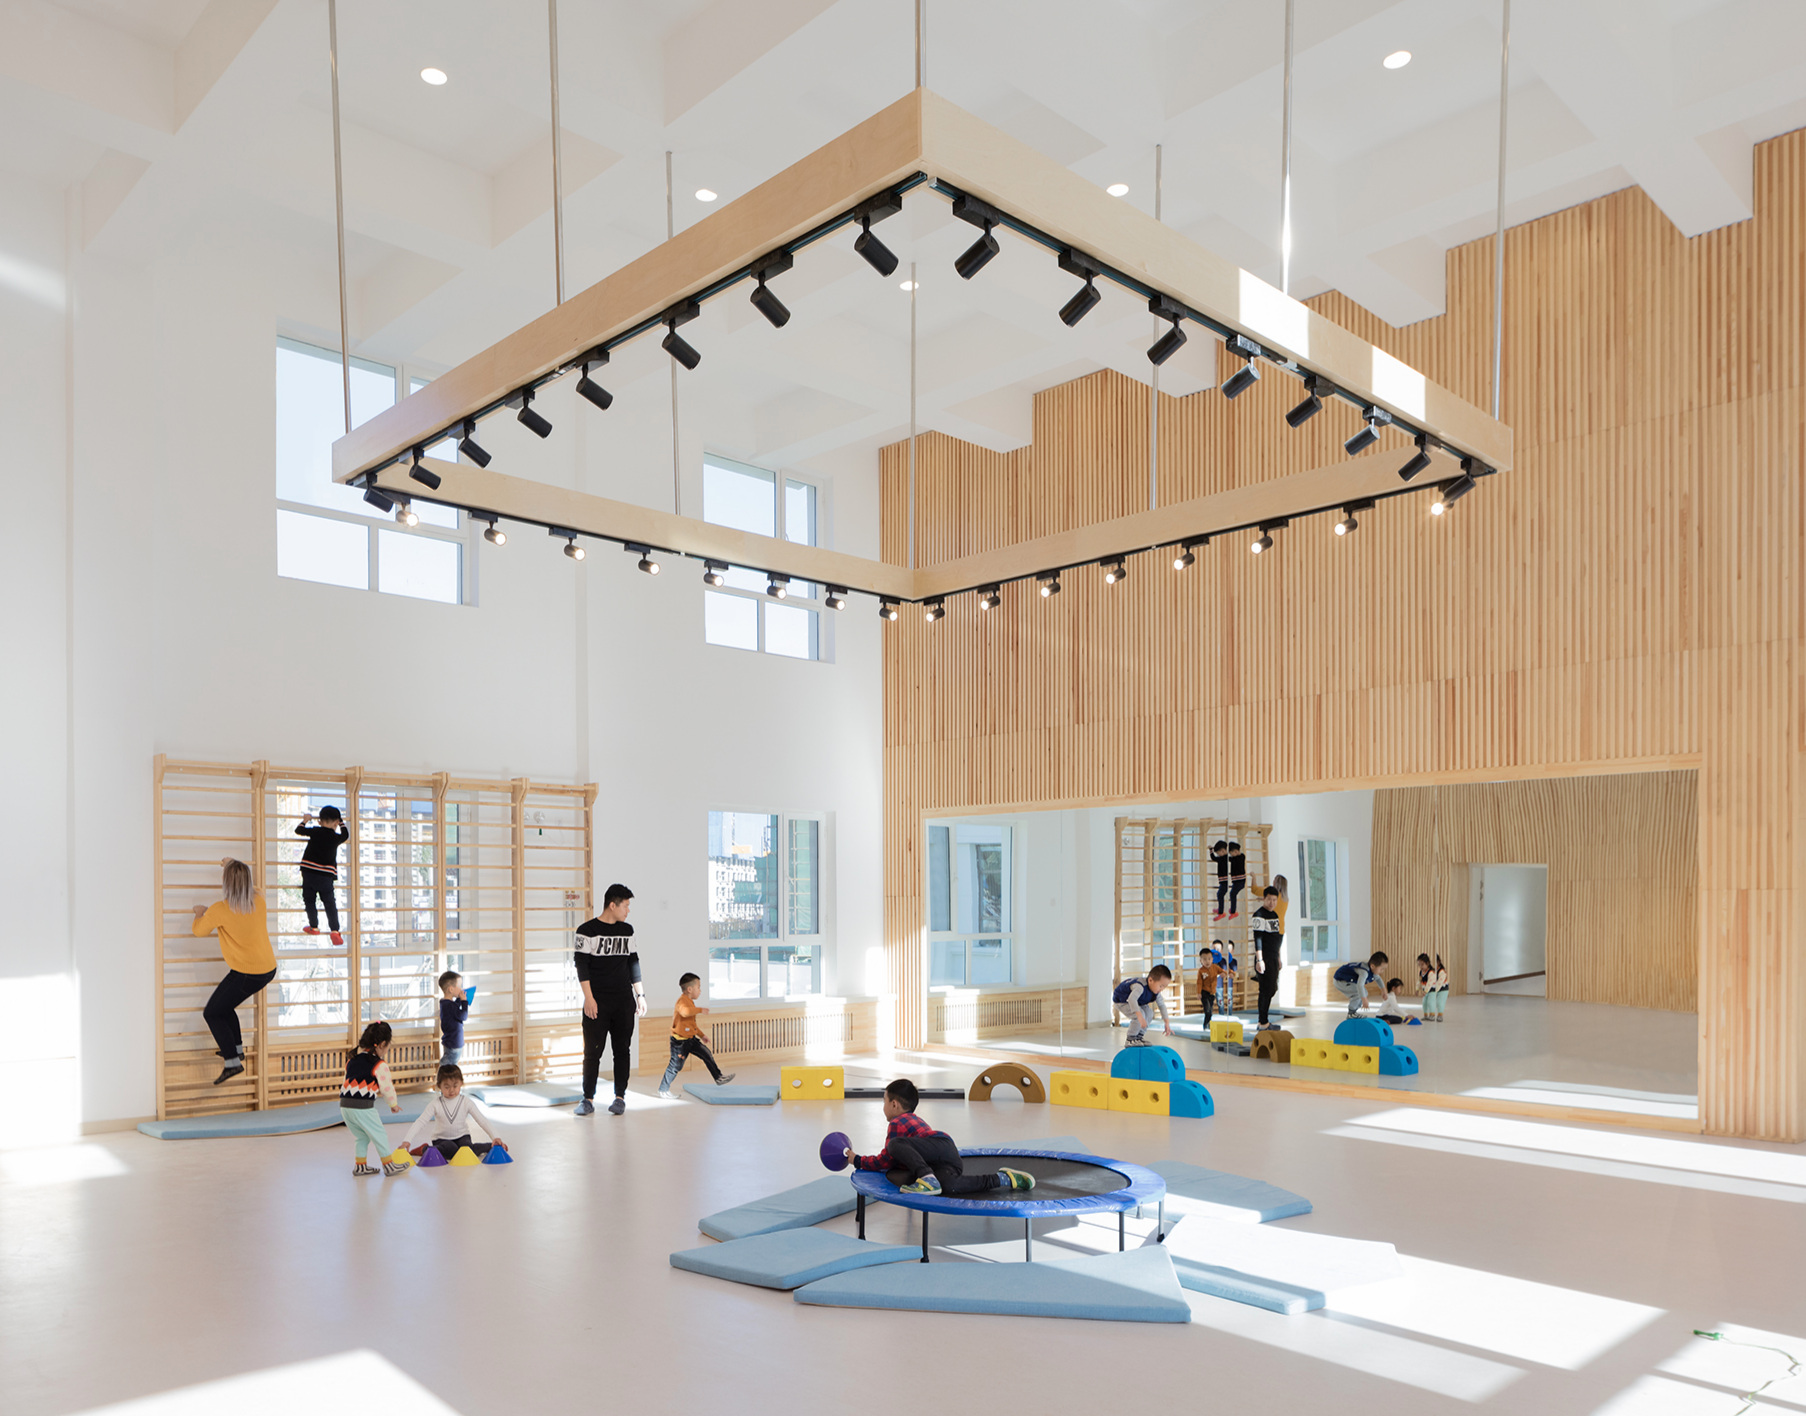 HEI Schools also uses Finnish designers and architects to build inspiring spaces.